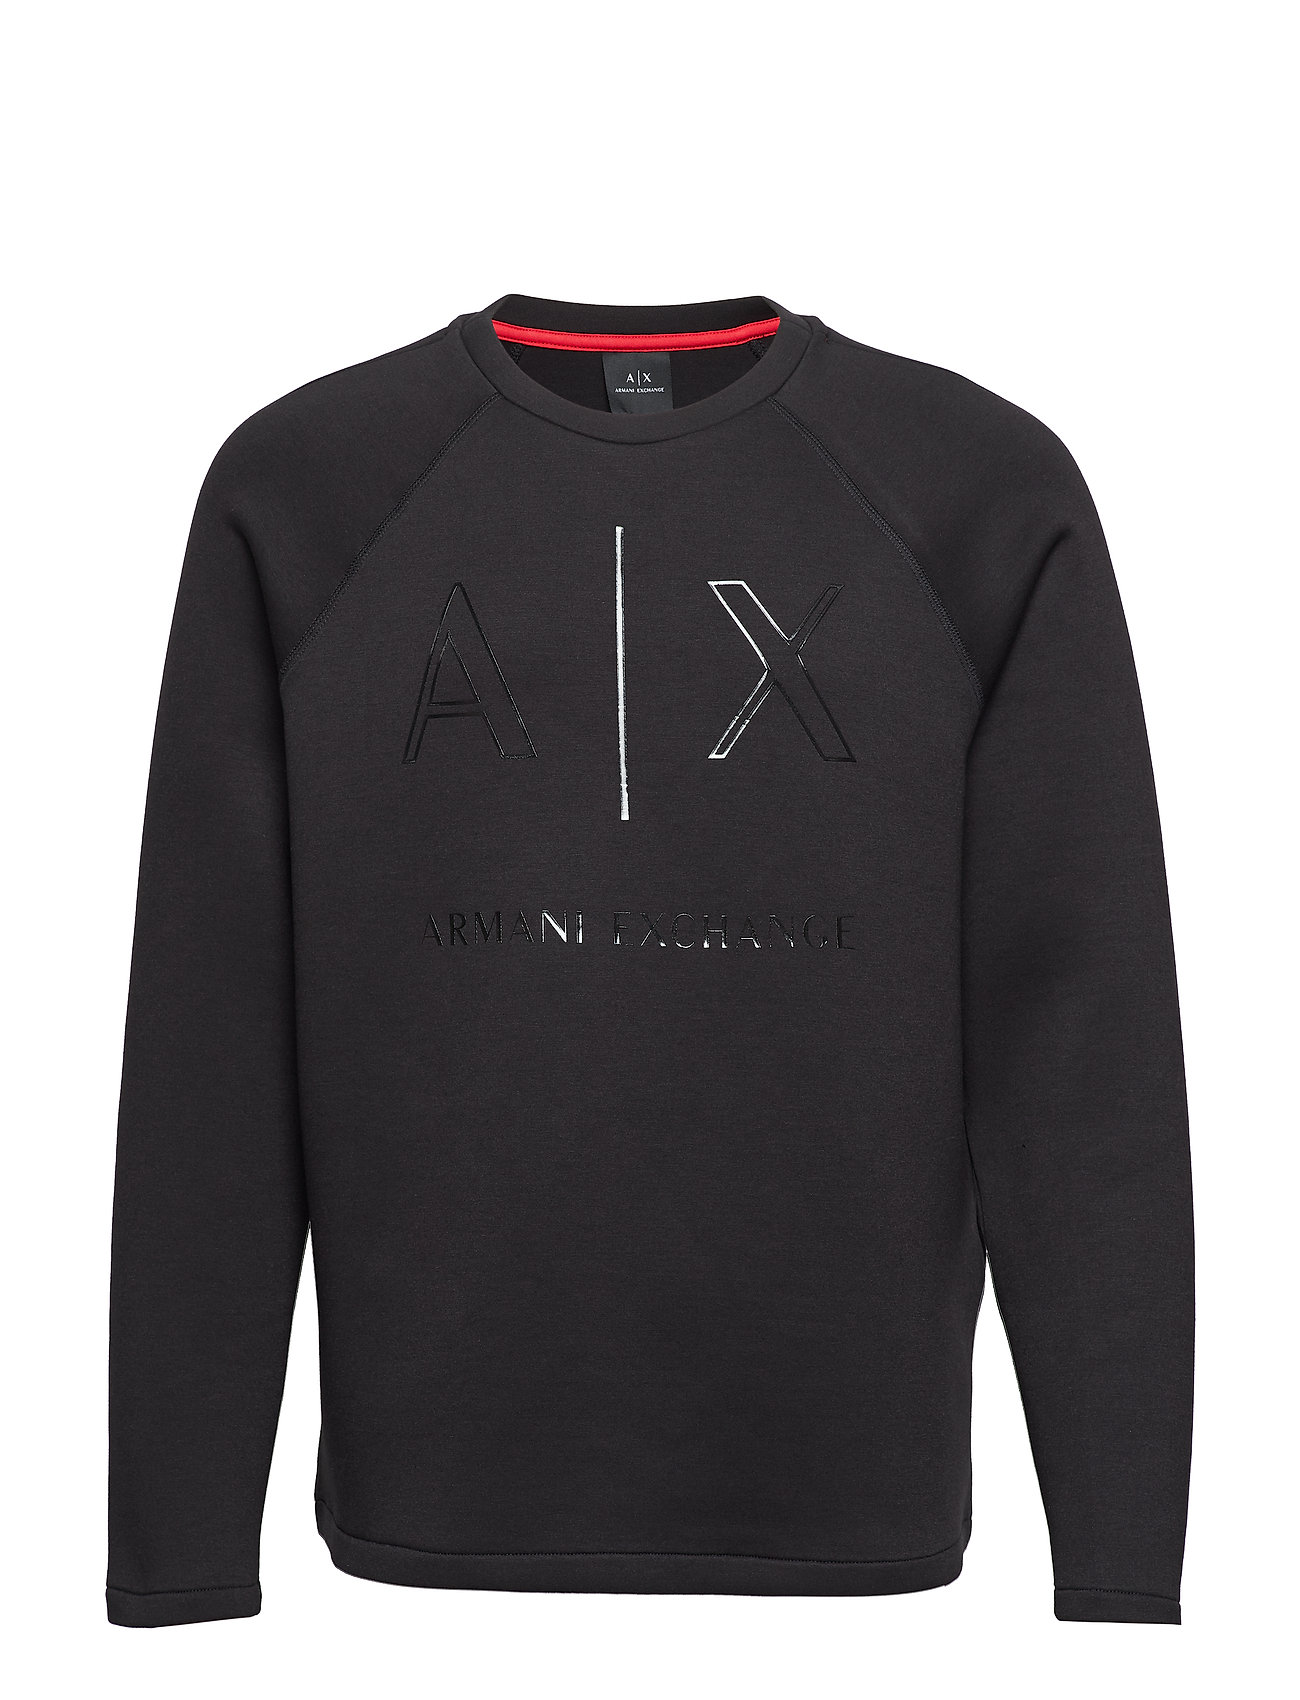 ARMANI EXCHANGE Man Jersey Sweatshirt Sweat-shirt Pullover Schwarz ARMANI EXCHANGE